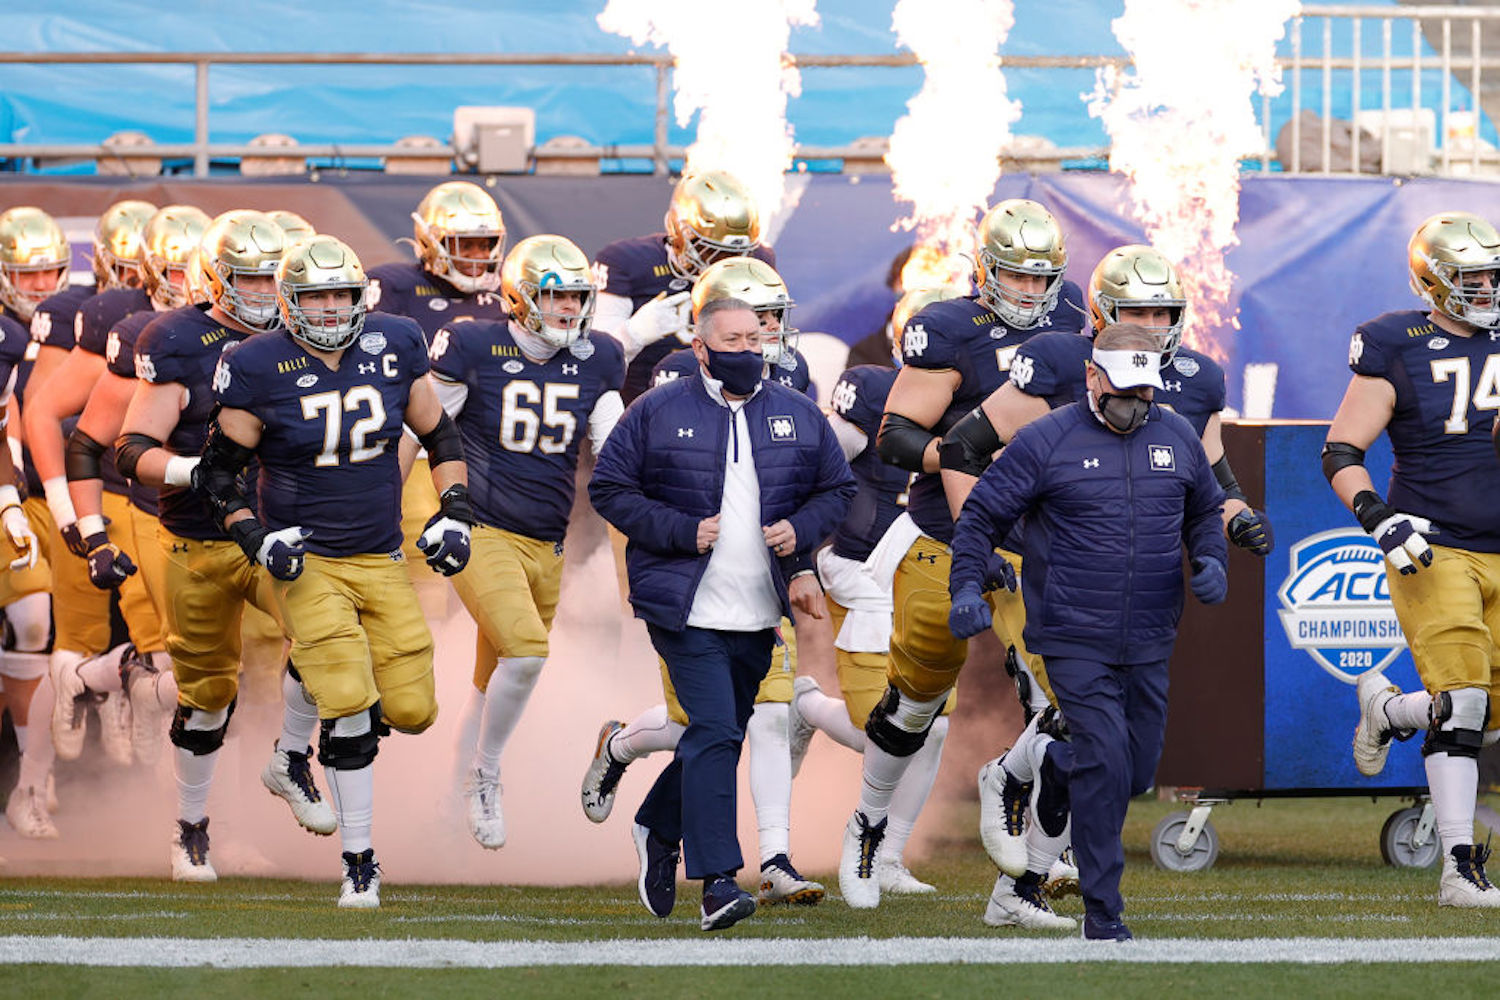 Notre Dame just lost by 24 to Clemson in the ACC Championship, but they still made the College Football Playoff. How come?